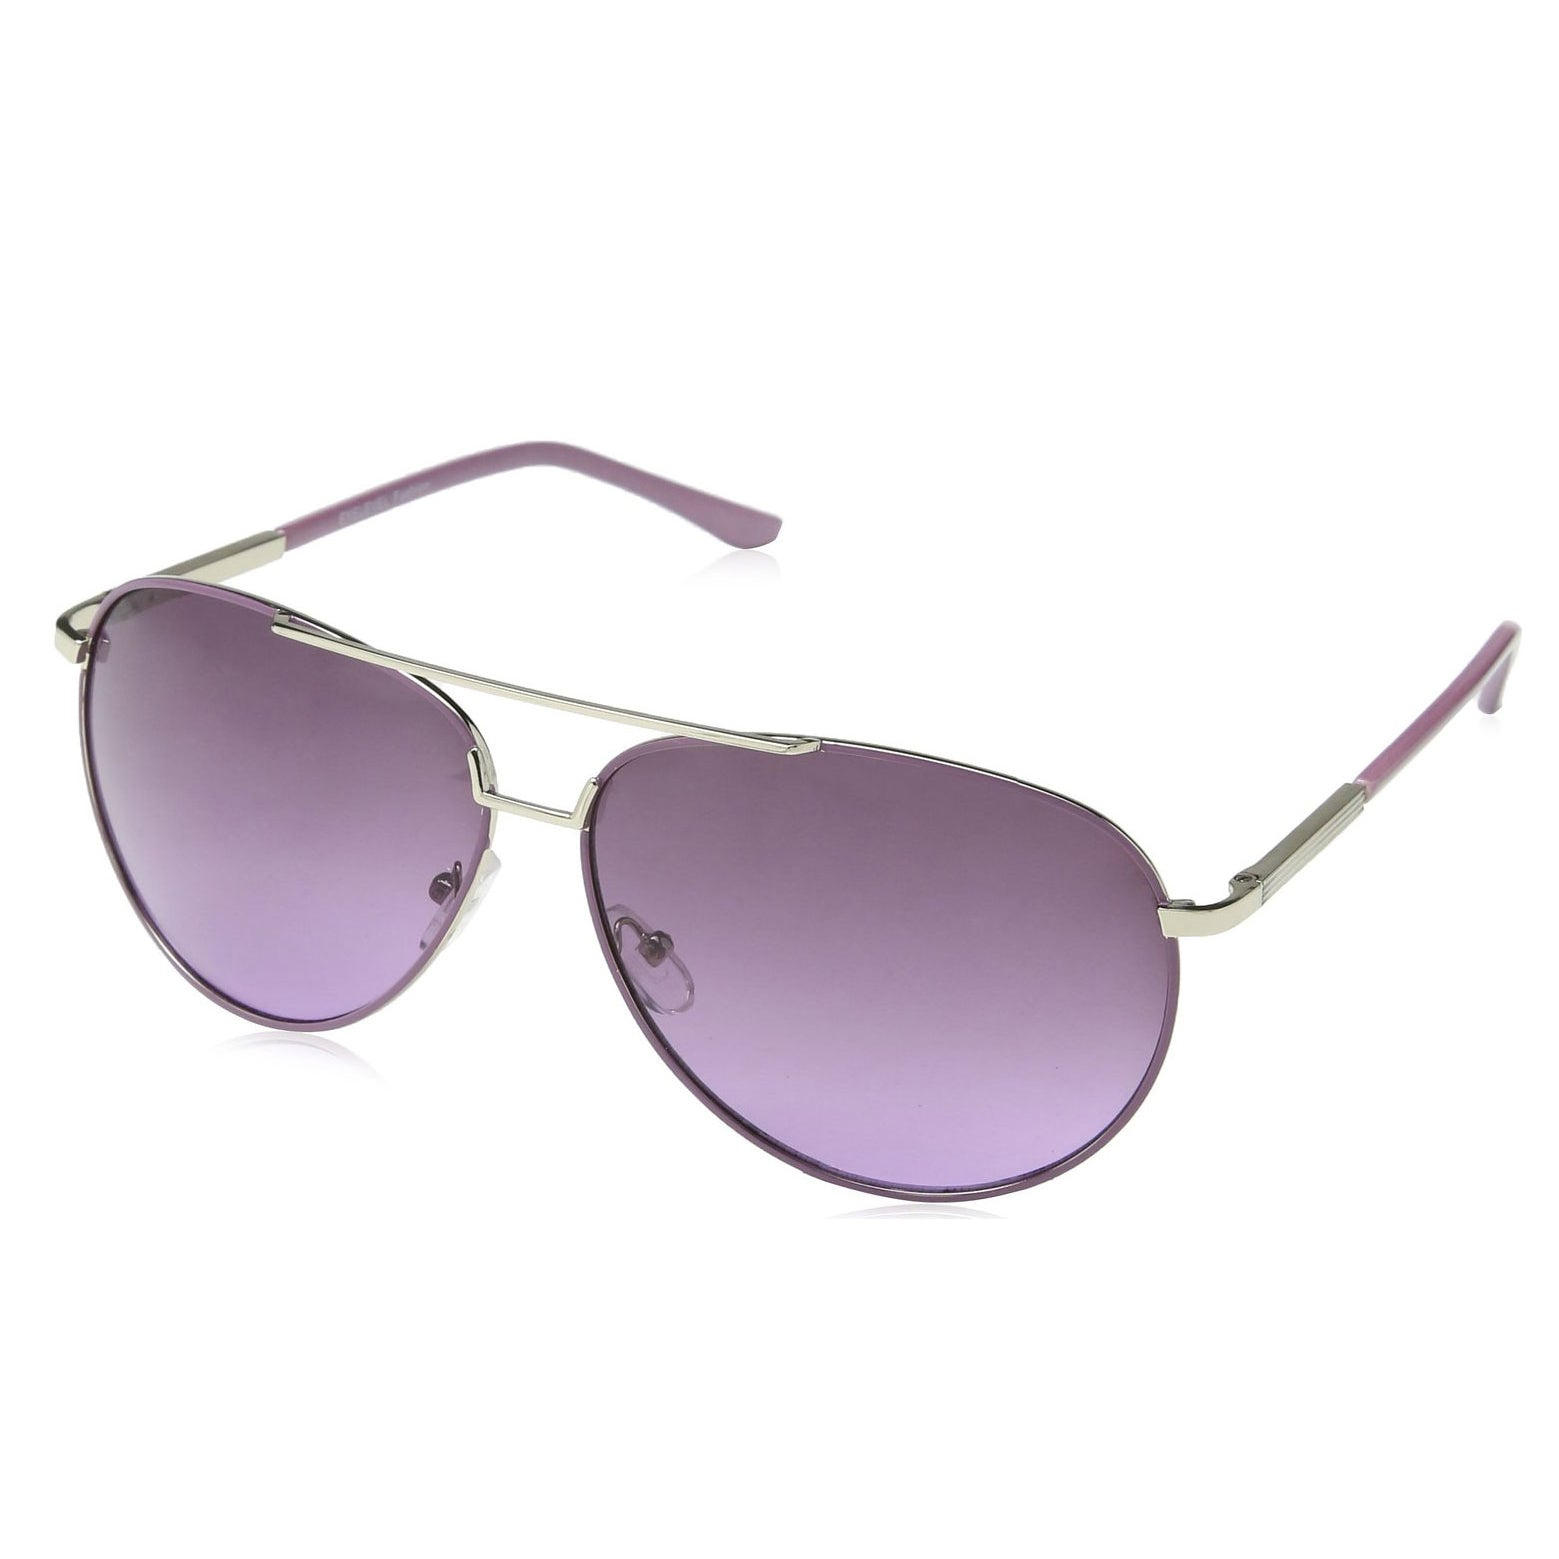 Eyelevel Orlando Aviator Unisex Purple Sunglasses